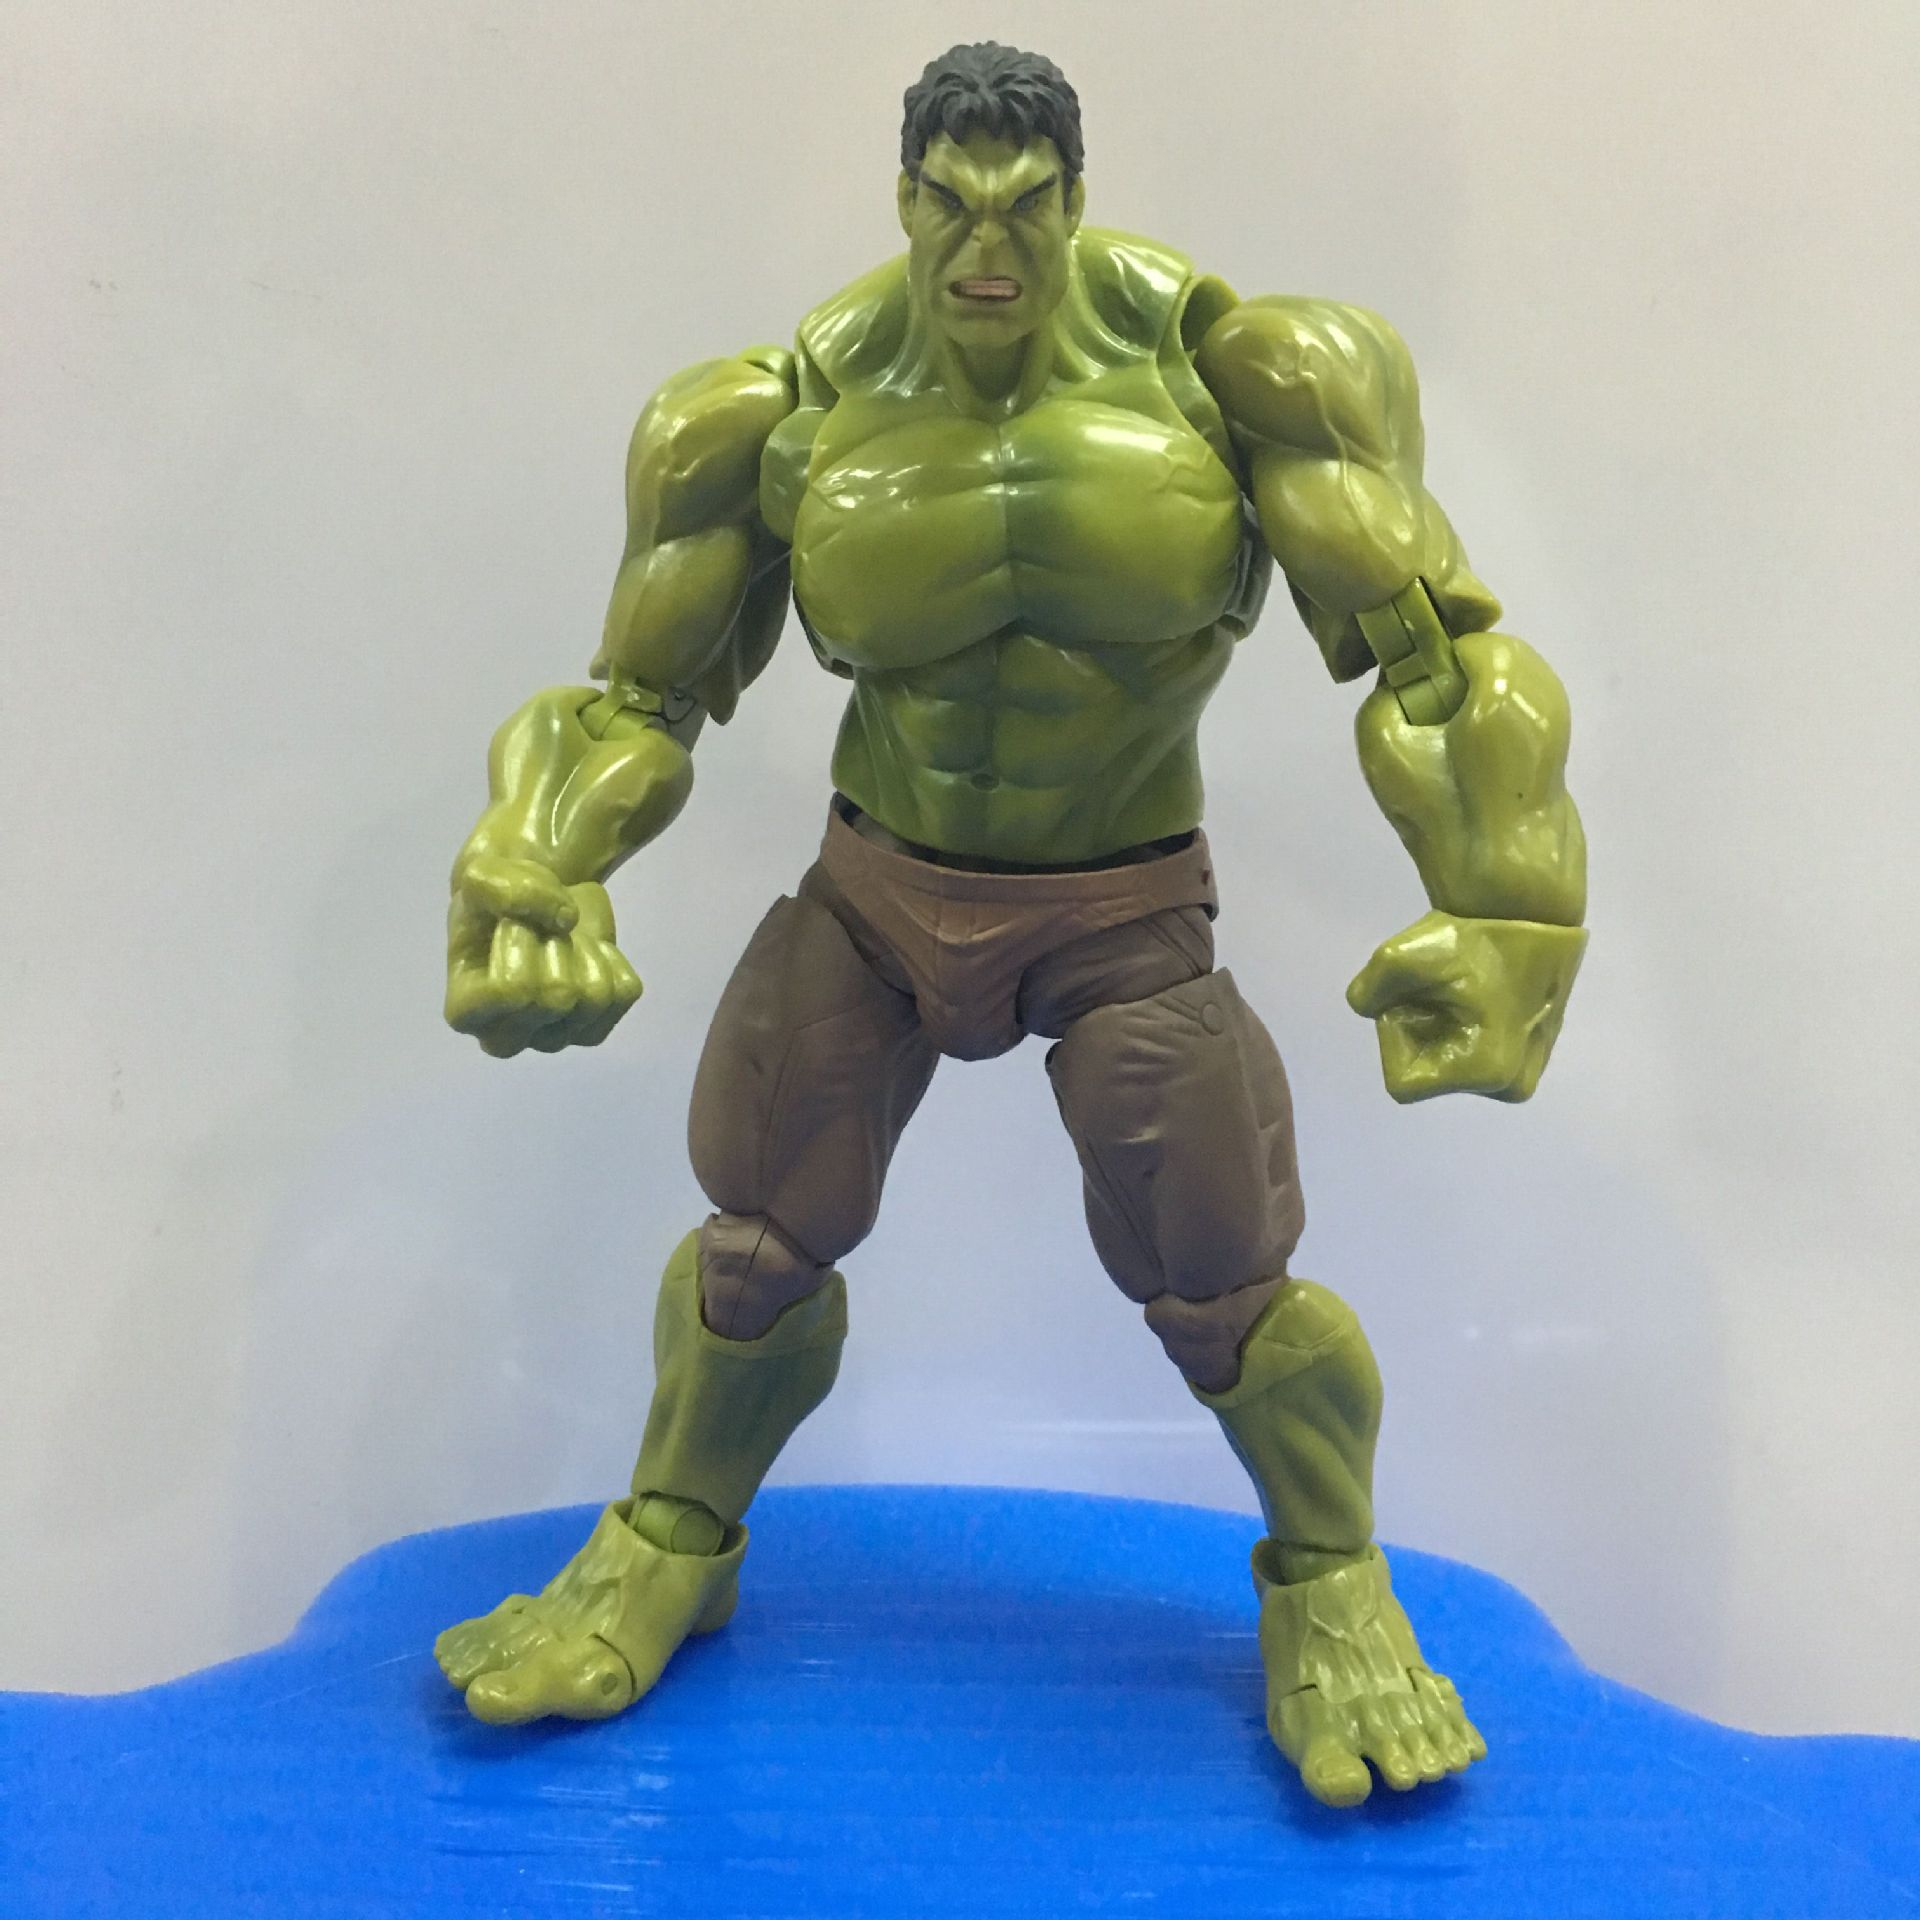 ФОТО 2017 Hot Toys Avengers Figures Hulk Action Figures Pvc Superman 17cm Figma Best Decration Gifts For Kids Collection Models